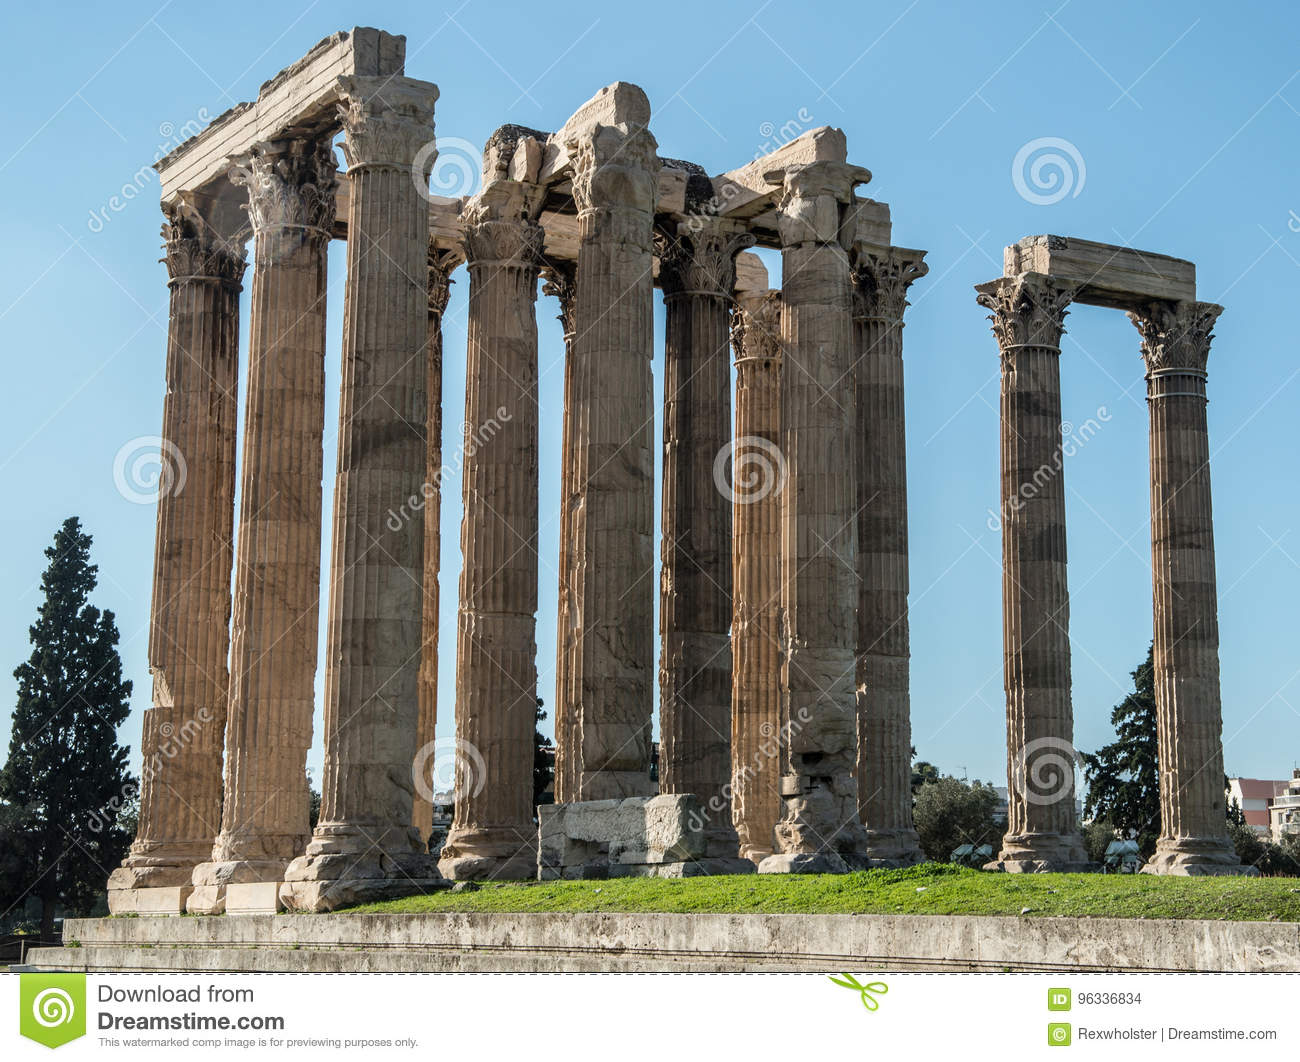 Ruins at the Temple of Olympian Zeus